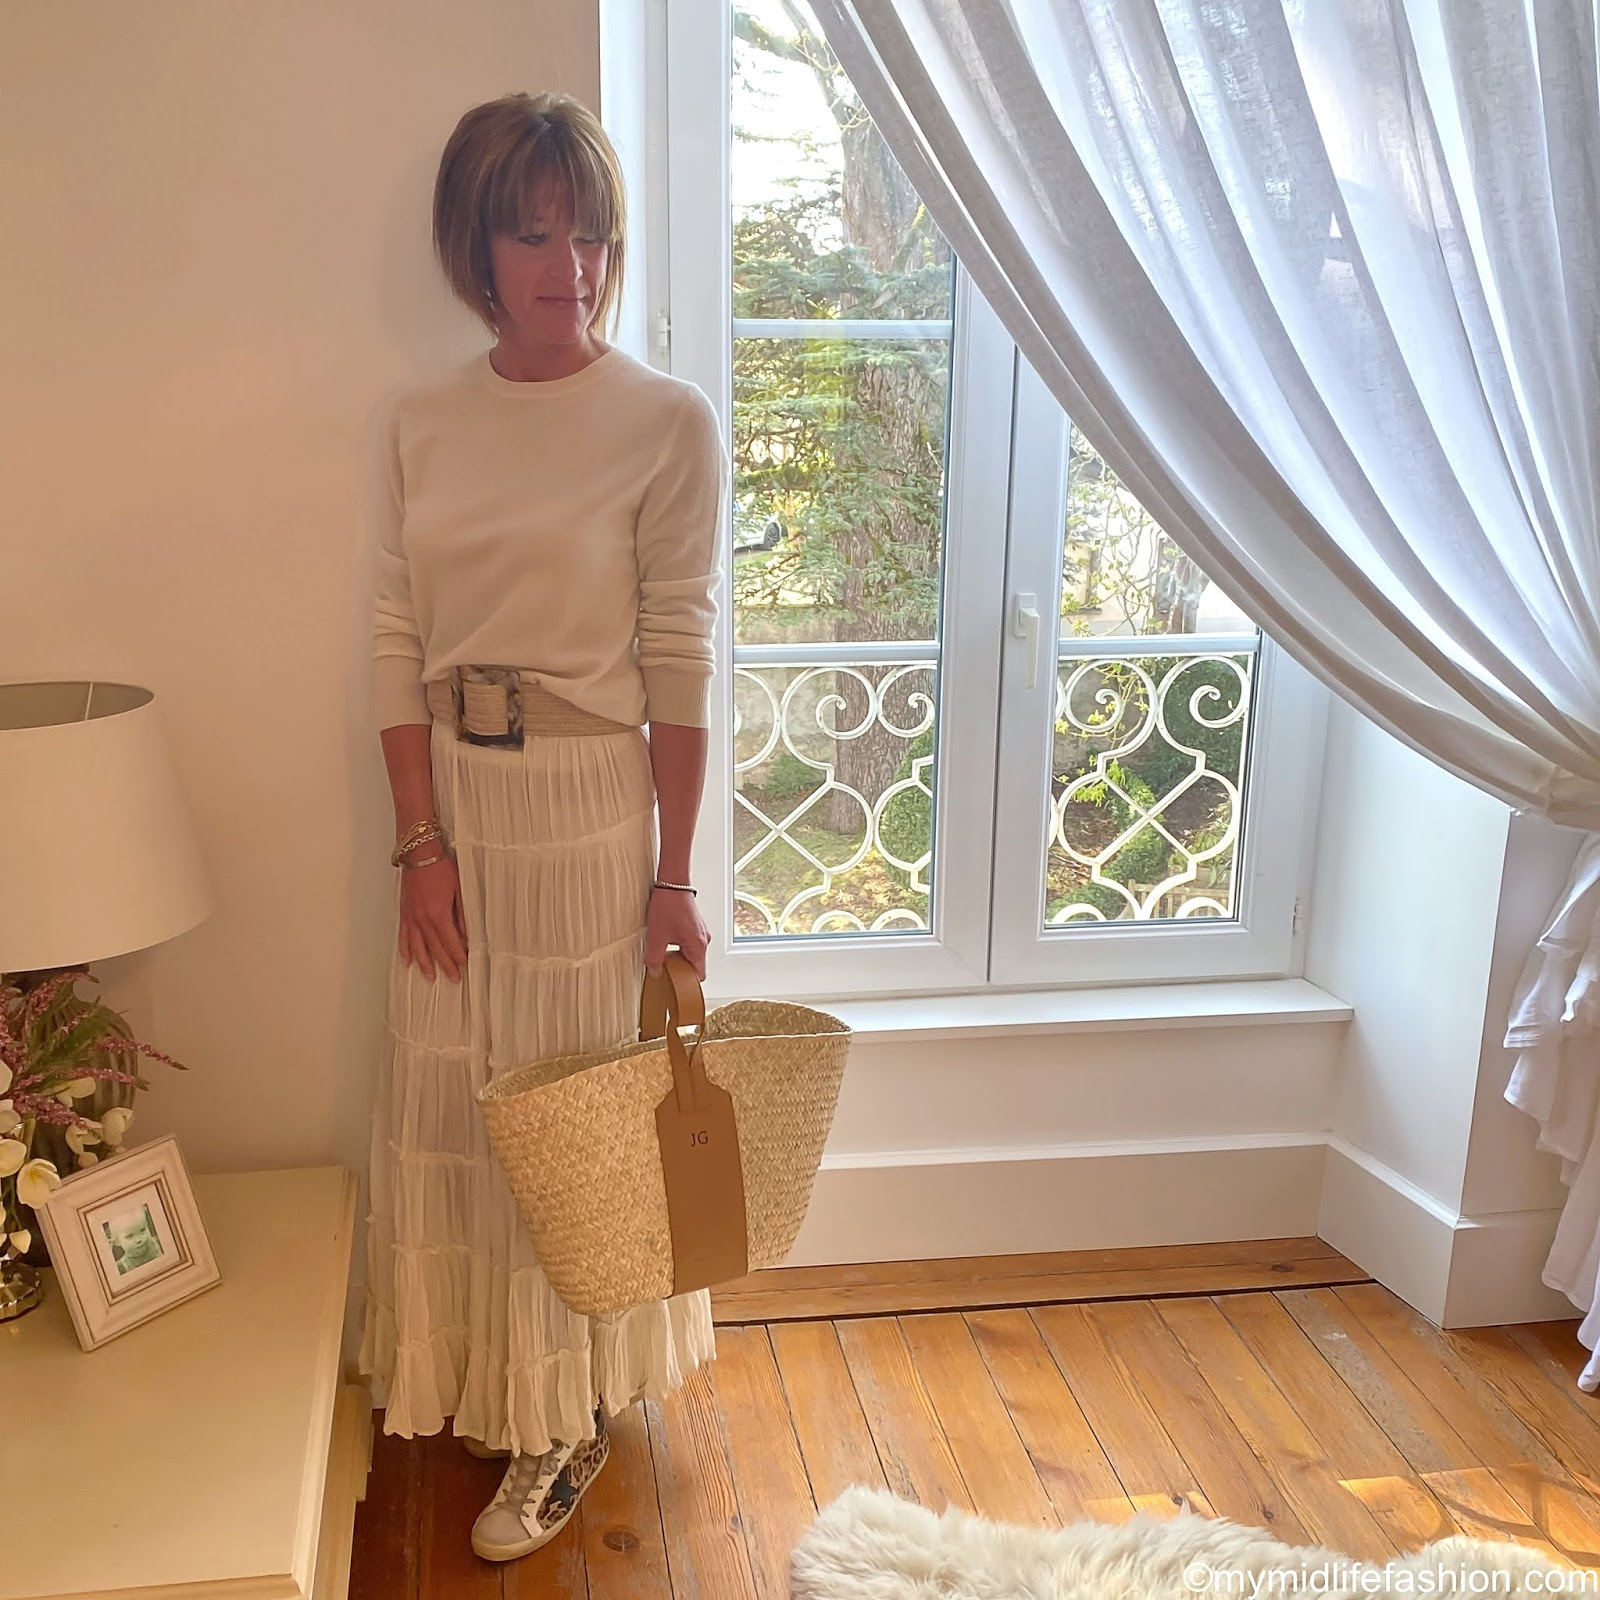 my midlife fashion, marks and Spencer pure cashmere round neck jumper, zara woven jute belt, Ralph Lauren tiered maxi skirt, rae feather tiered maxi skirt, golden goose superstar leopard print trainers